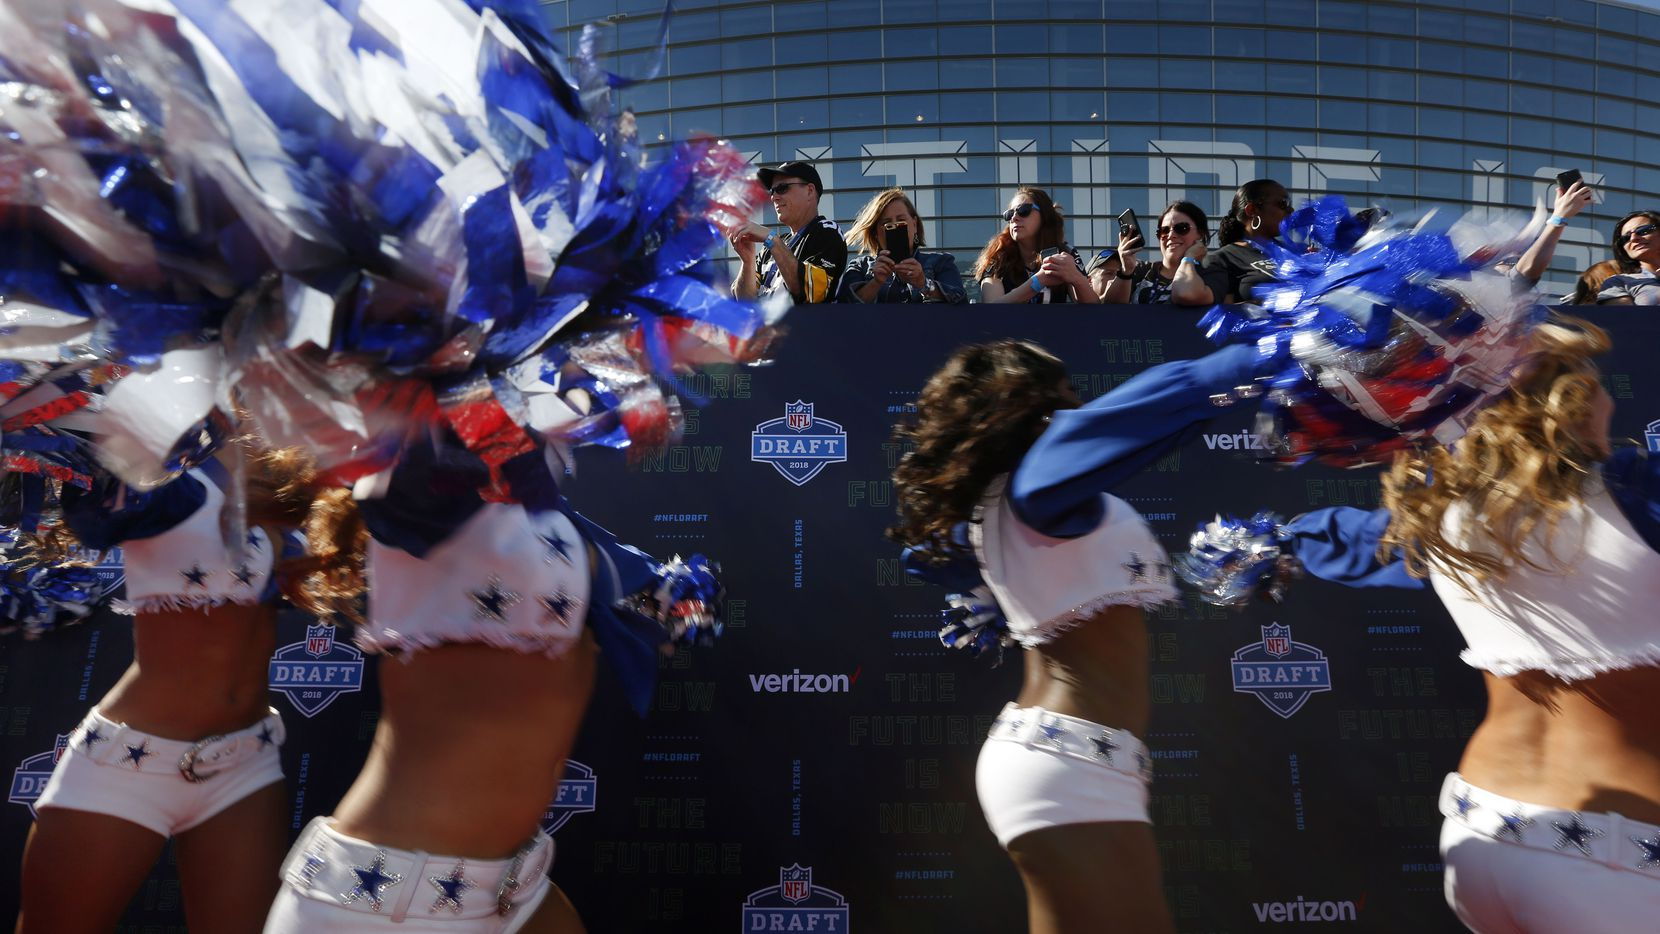 The Dallas Cowboys Cheerleaders performed on the red carpet before the NFL draft at AT&T Stadium in Arlington in April.